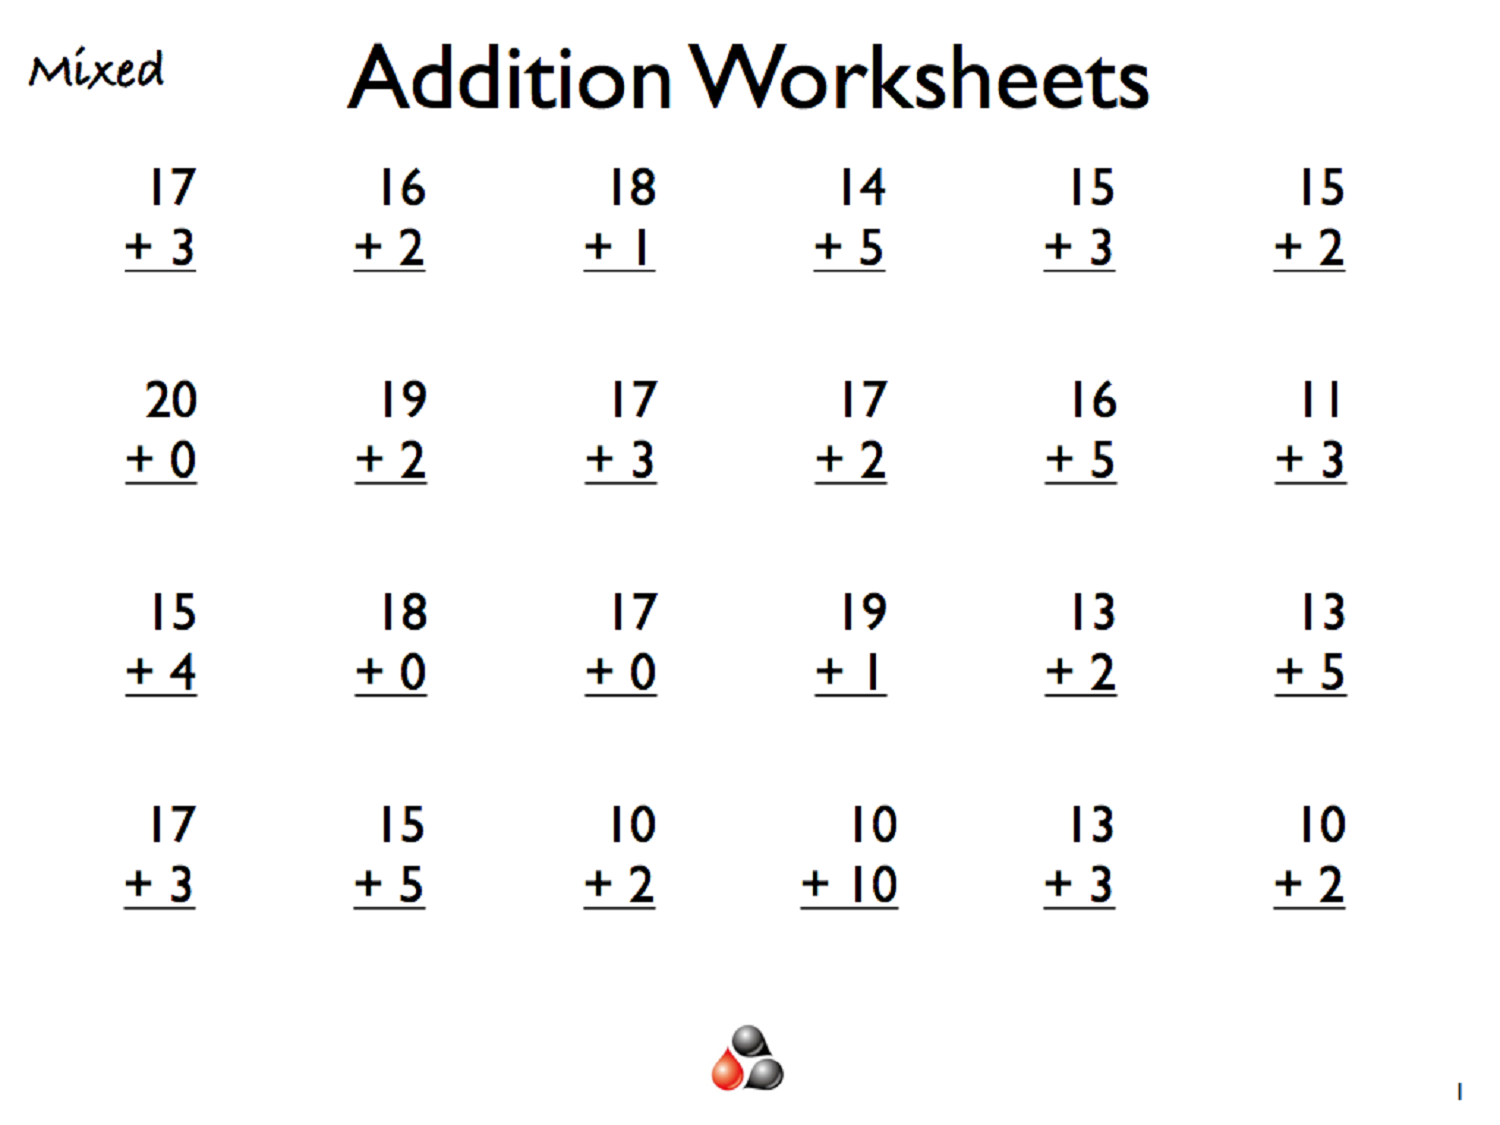 Worksheet Addition Exercises For Grade 1 1000 images about kids activity math on pinterest practices sheets and number worksheets